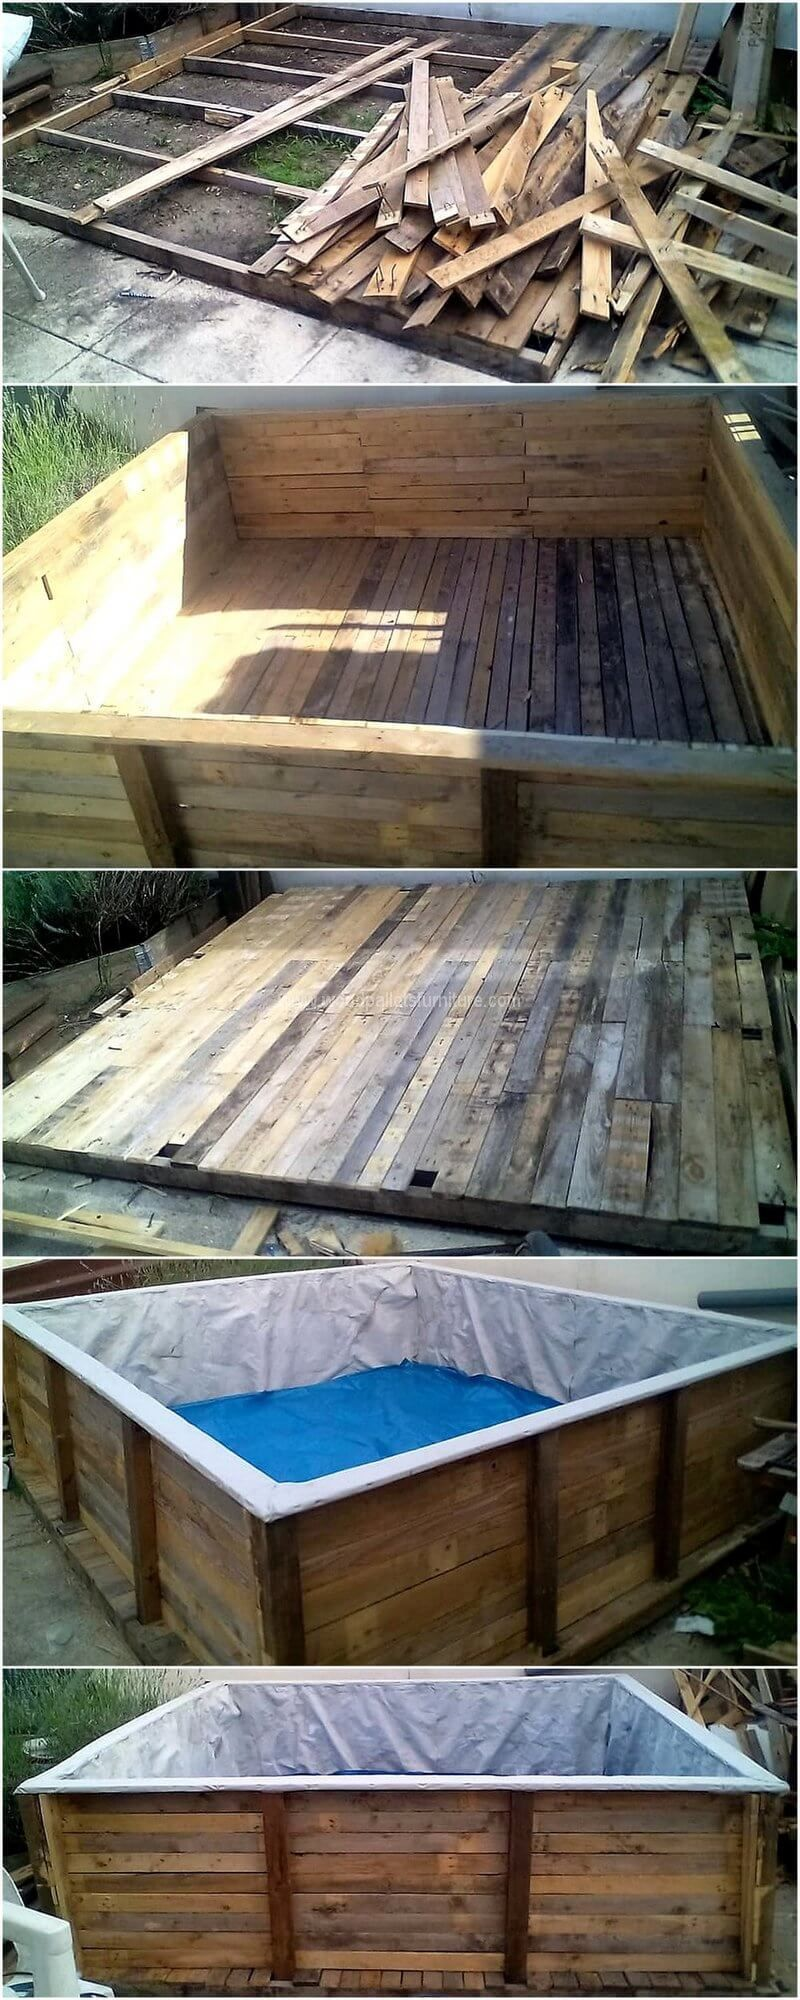 Trending Diy Ideas For Wood Pallets Recycling Wood Pallet Furniture Wood Pallet Recycling Wood Pallets Pallet Pool